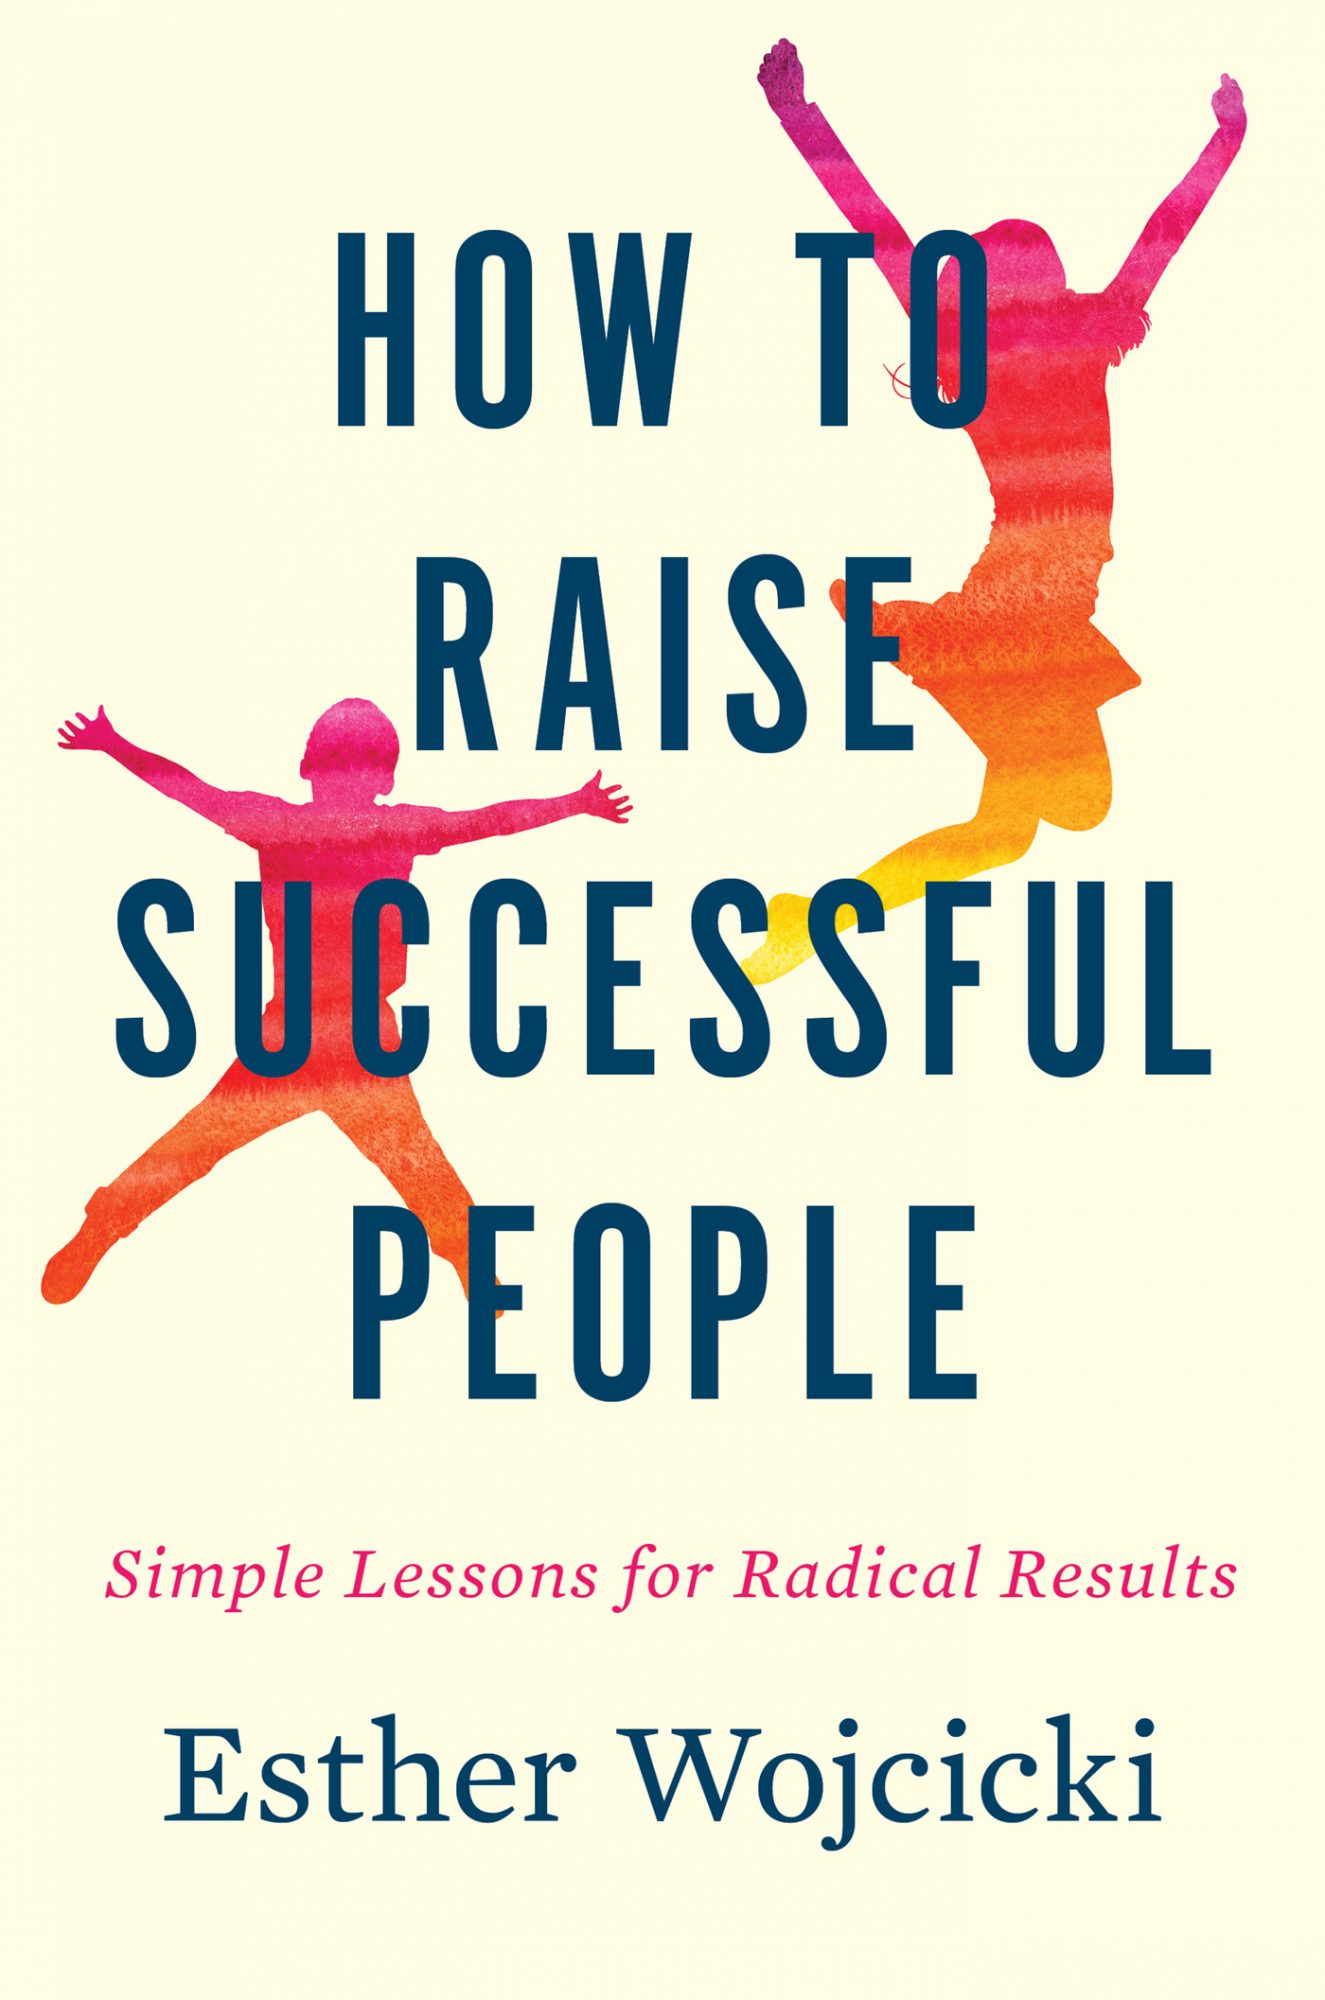 How to Raise Successful People: Simple Lessons for Radical Results by Esther Wojcicki